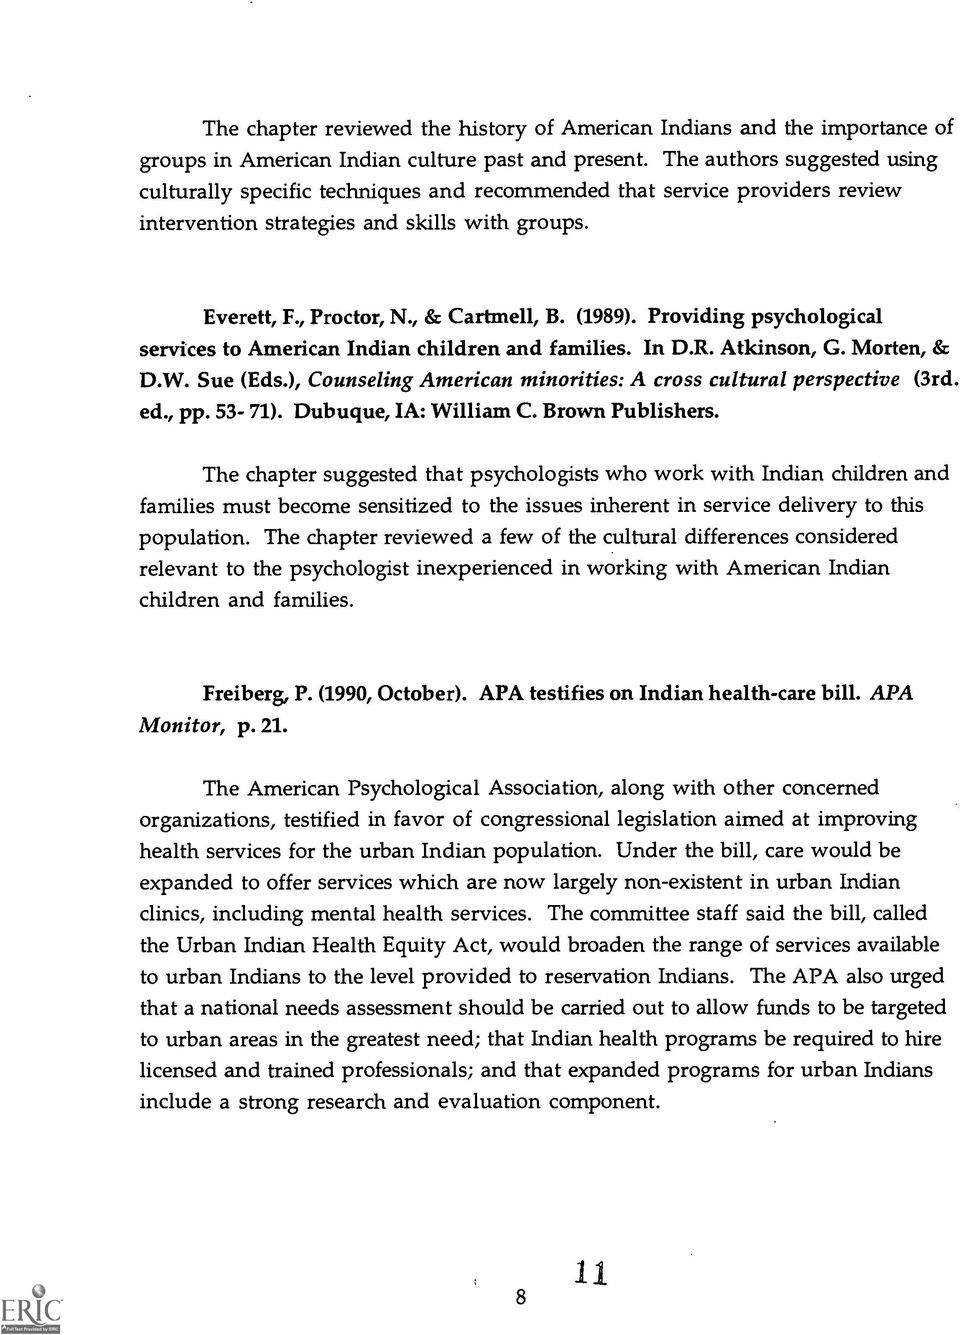 (1989). Providing psychological services to American Indian children and families. In D.R. Atkinson, G. Morten, & D.W. Sue (Eds.), Counseling American minorities: A cross cultural perspective (3rd.